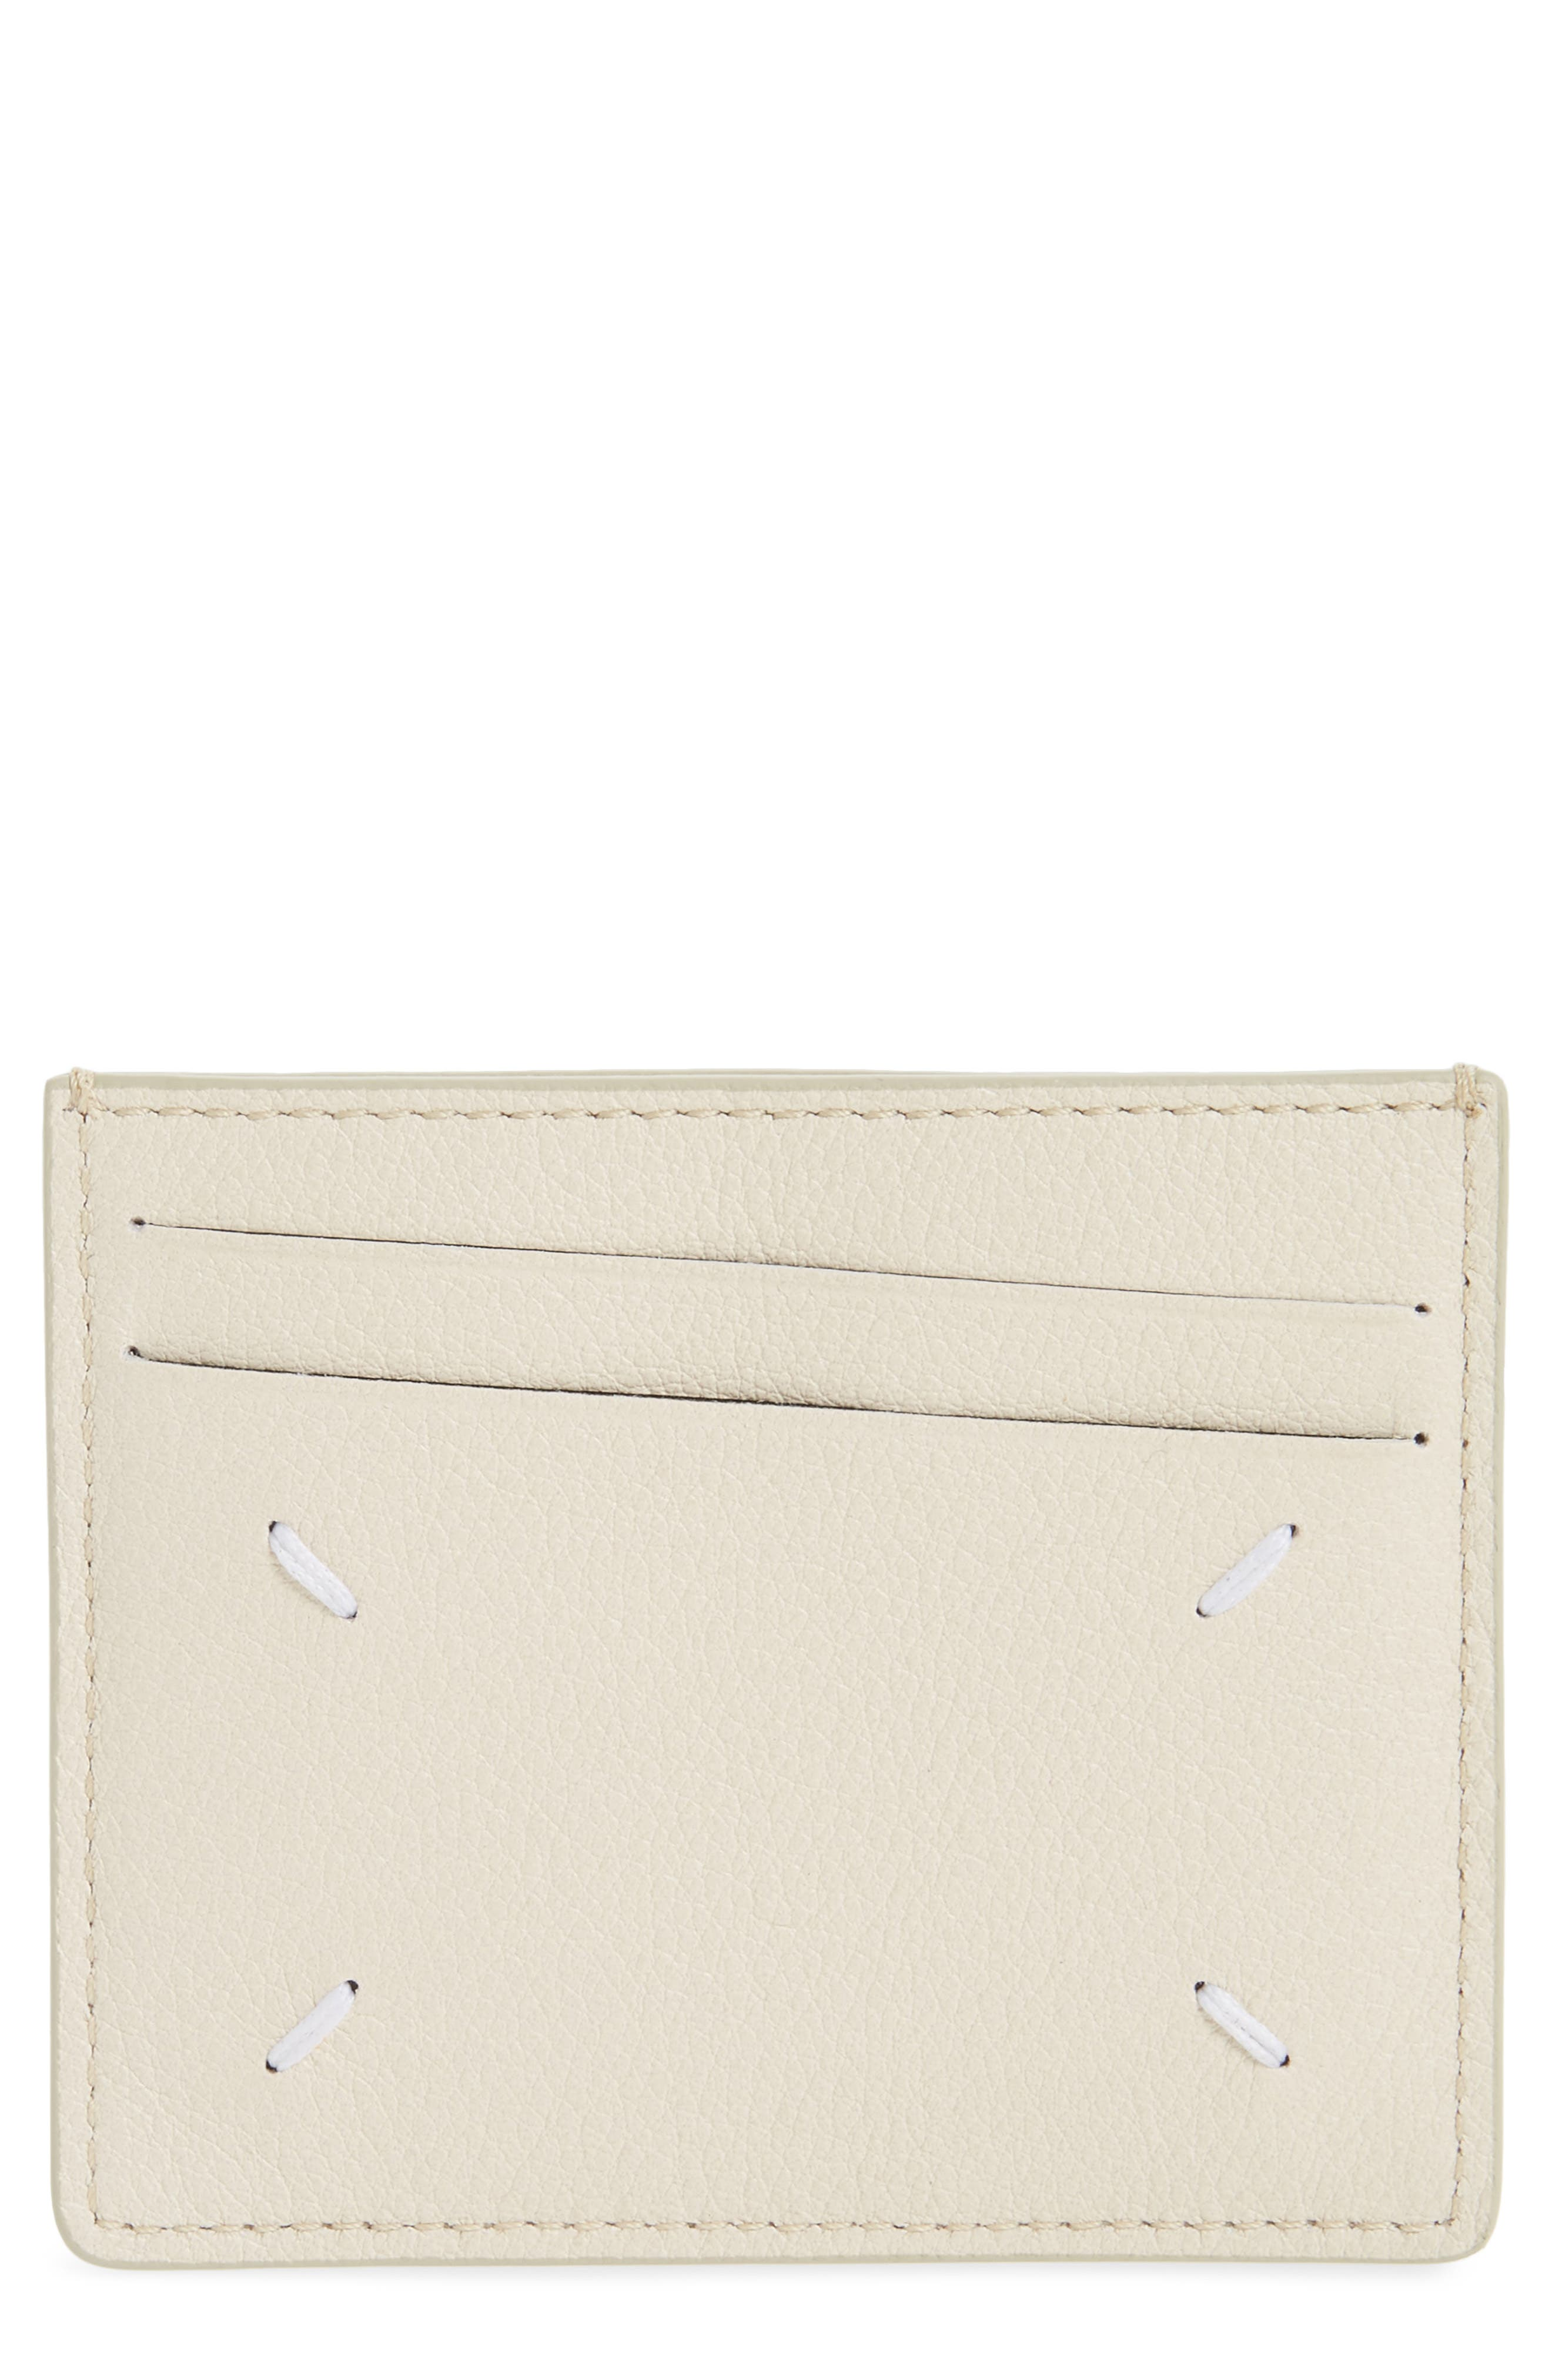 Leather Card Case,                             Main thumbnail 1, color,                             100